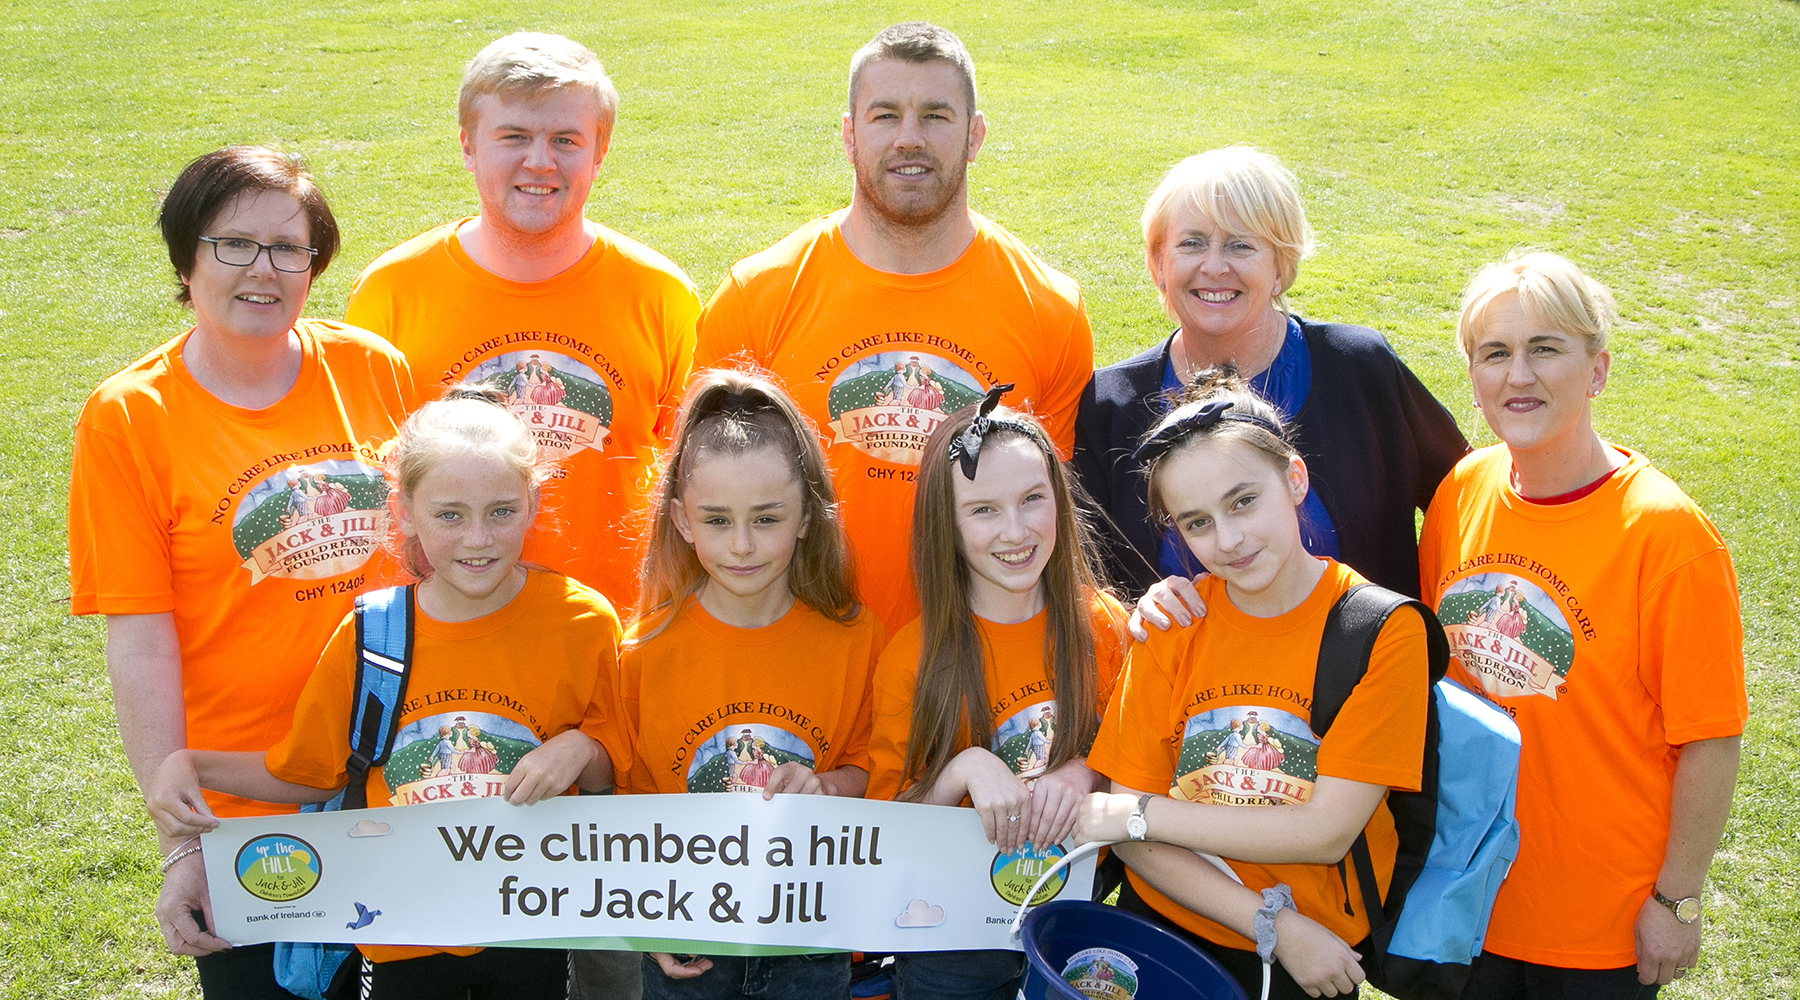 Sean O'Brien and the Jack and Jill team